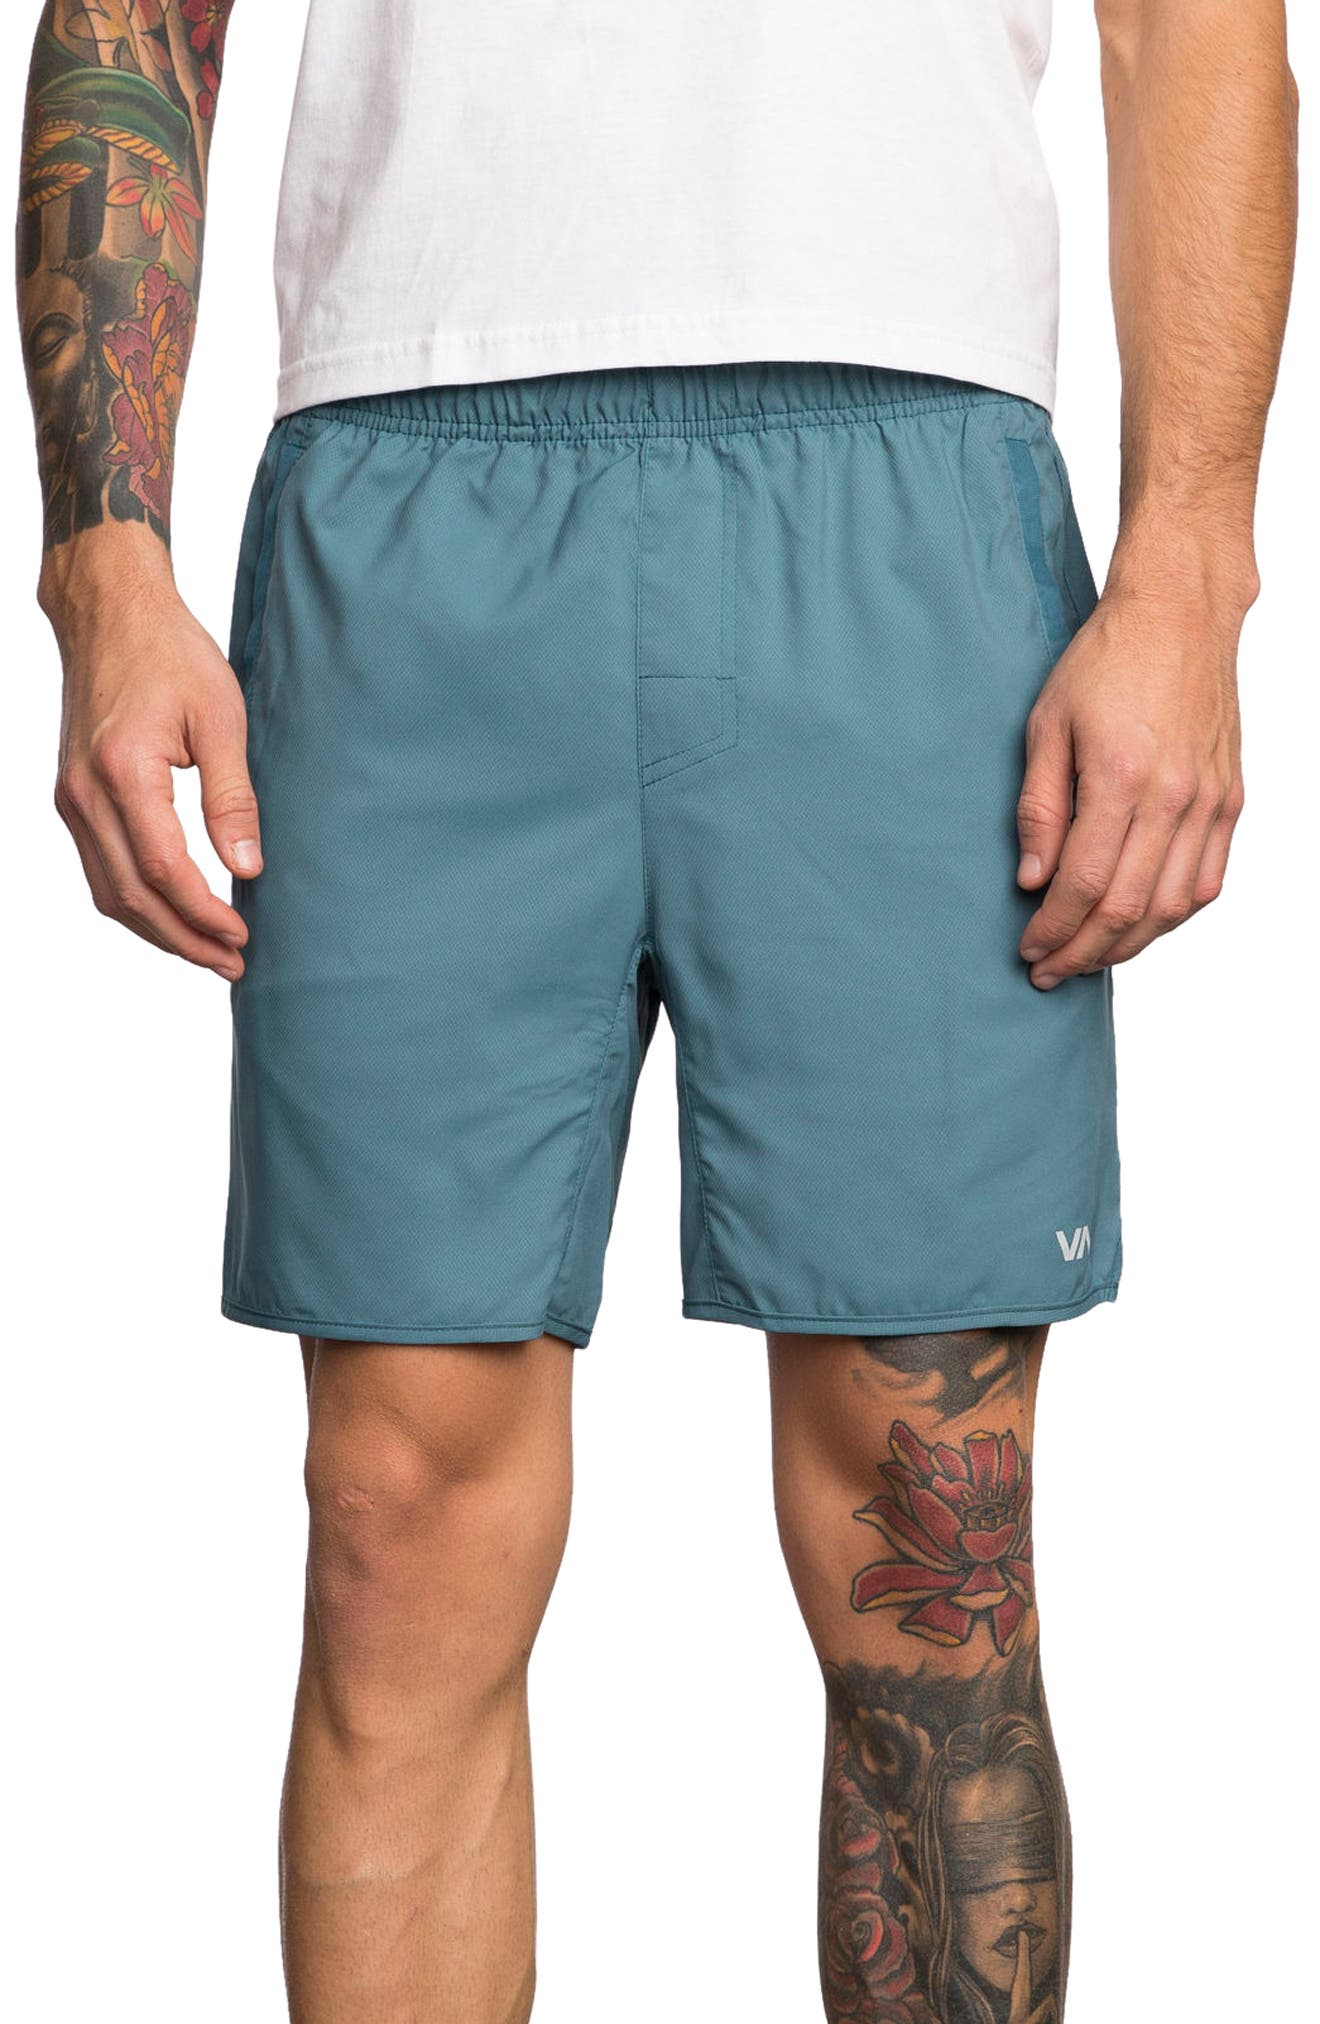 Main Image - RVCA Yogger III Athletic Shorts